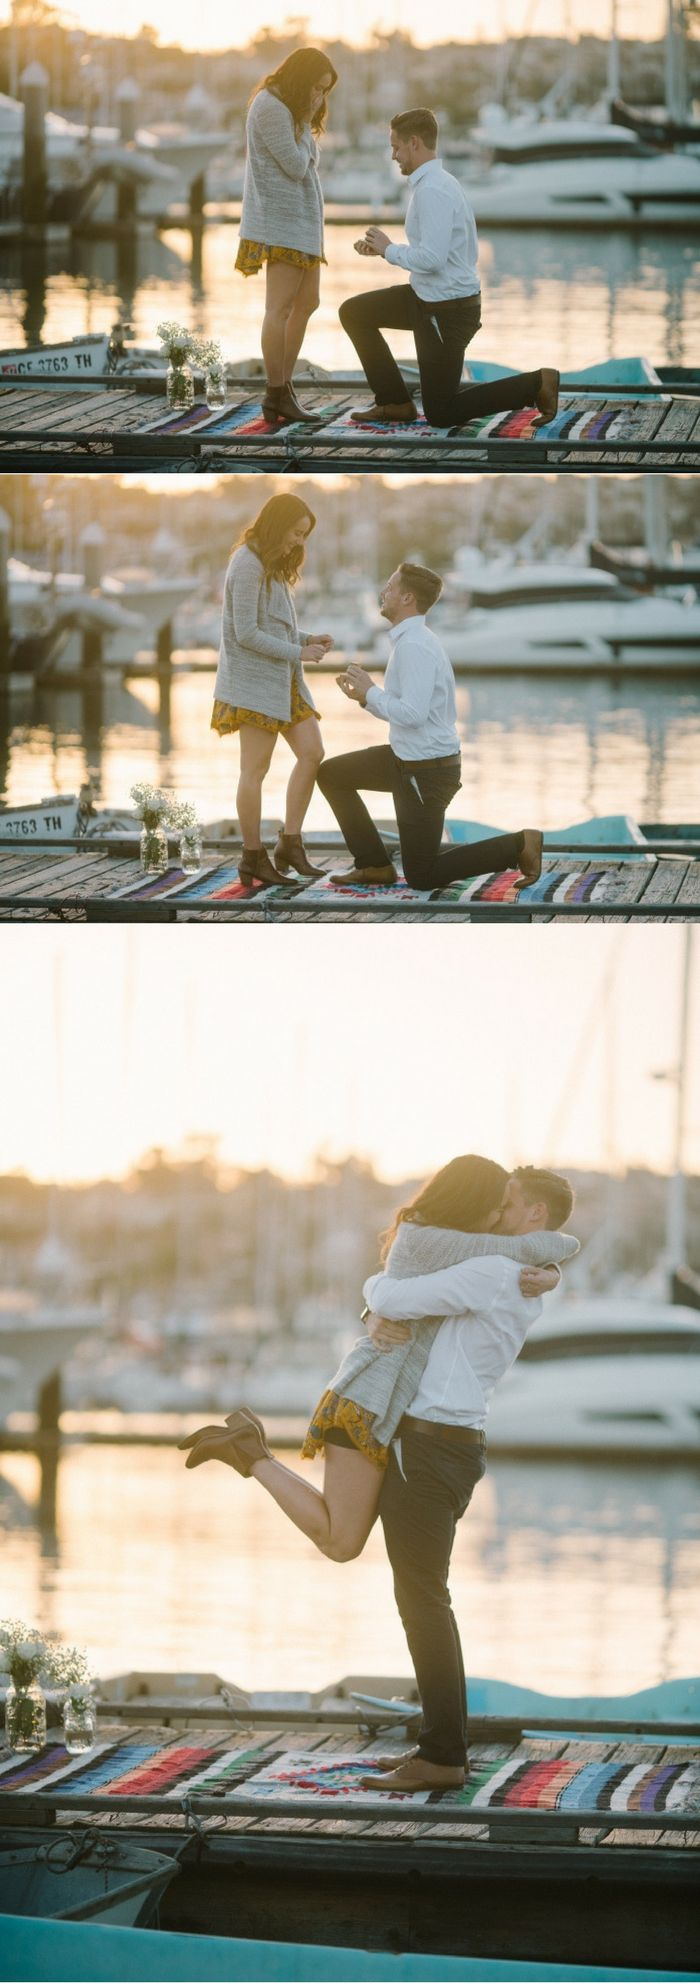 He proposed at sunset by the beach, and it's beyond romantic!